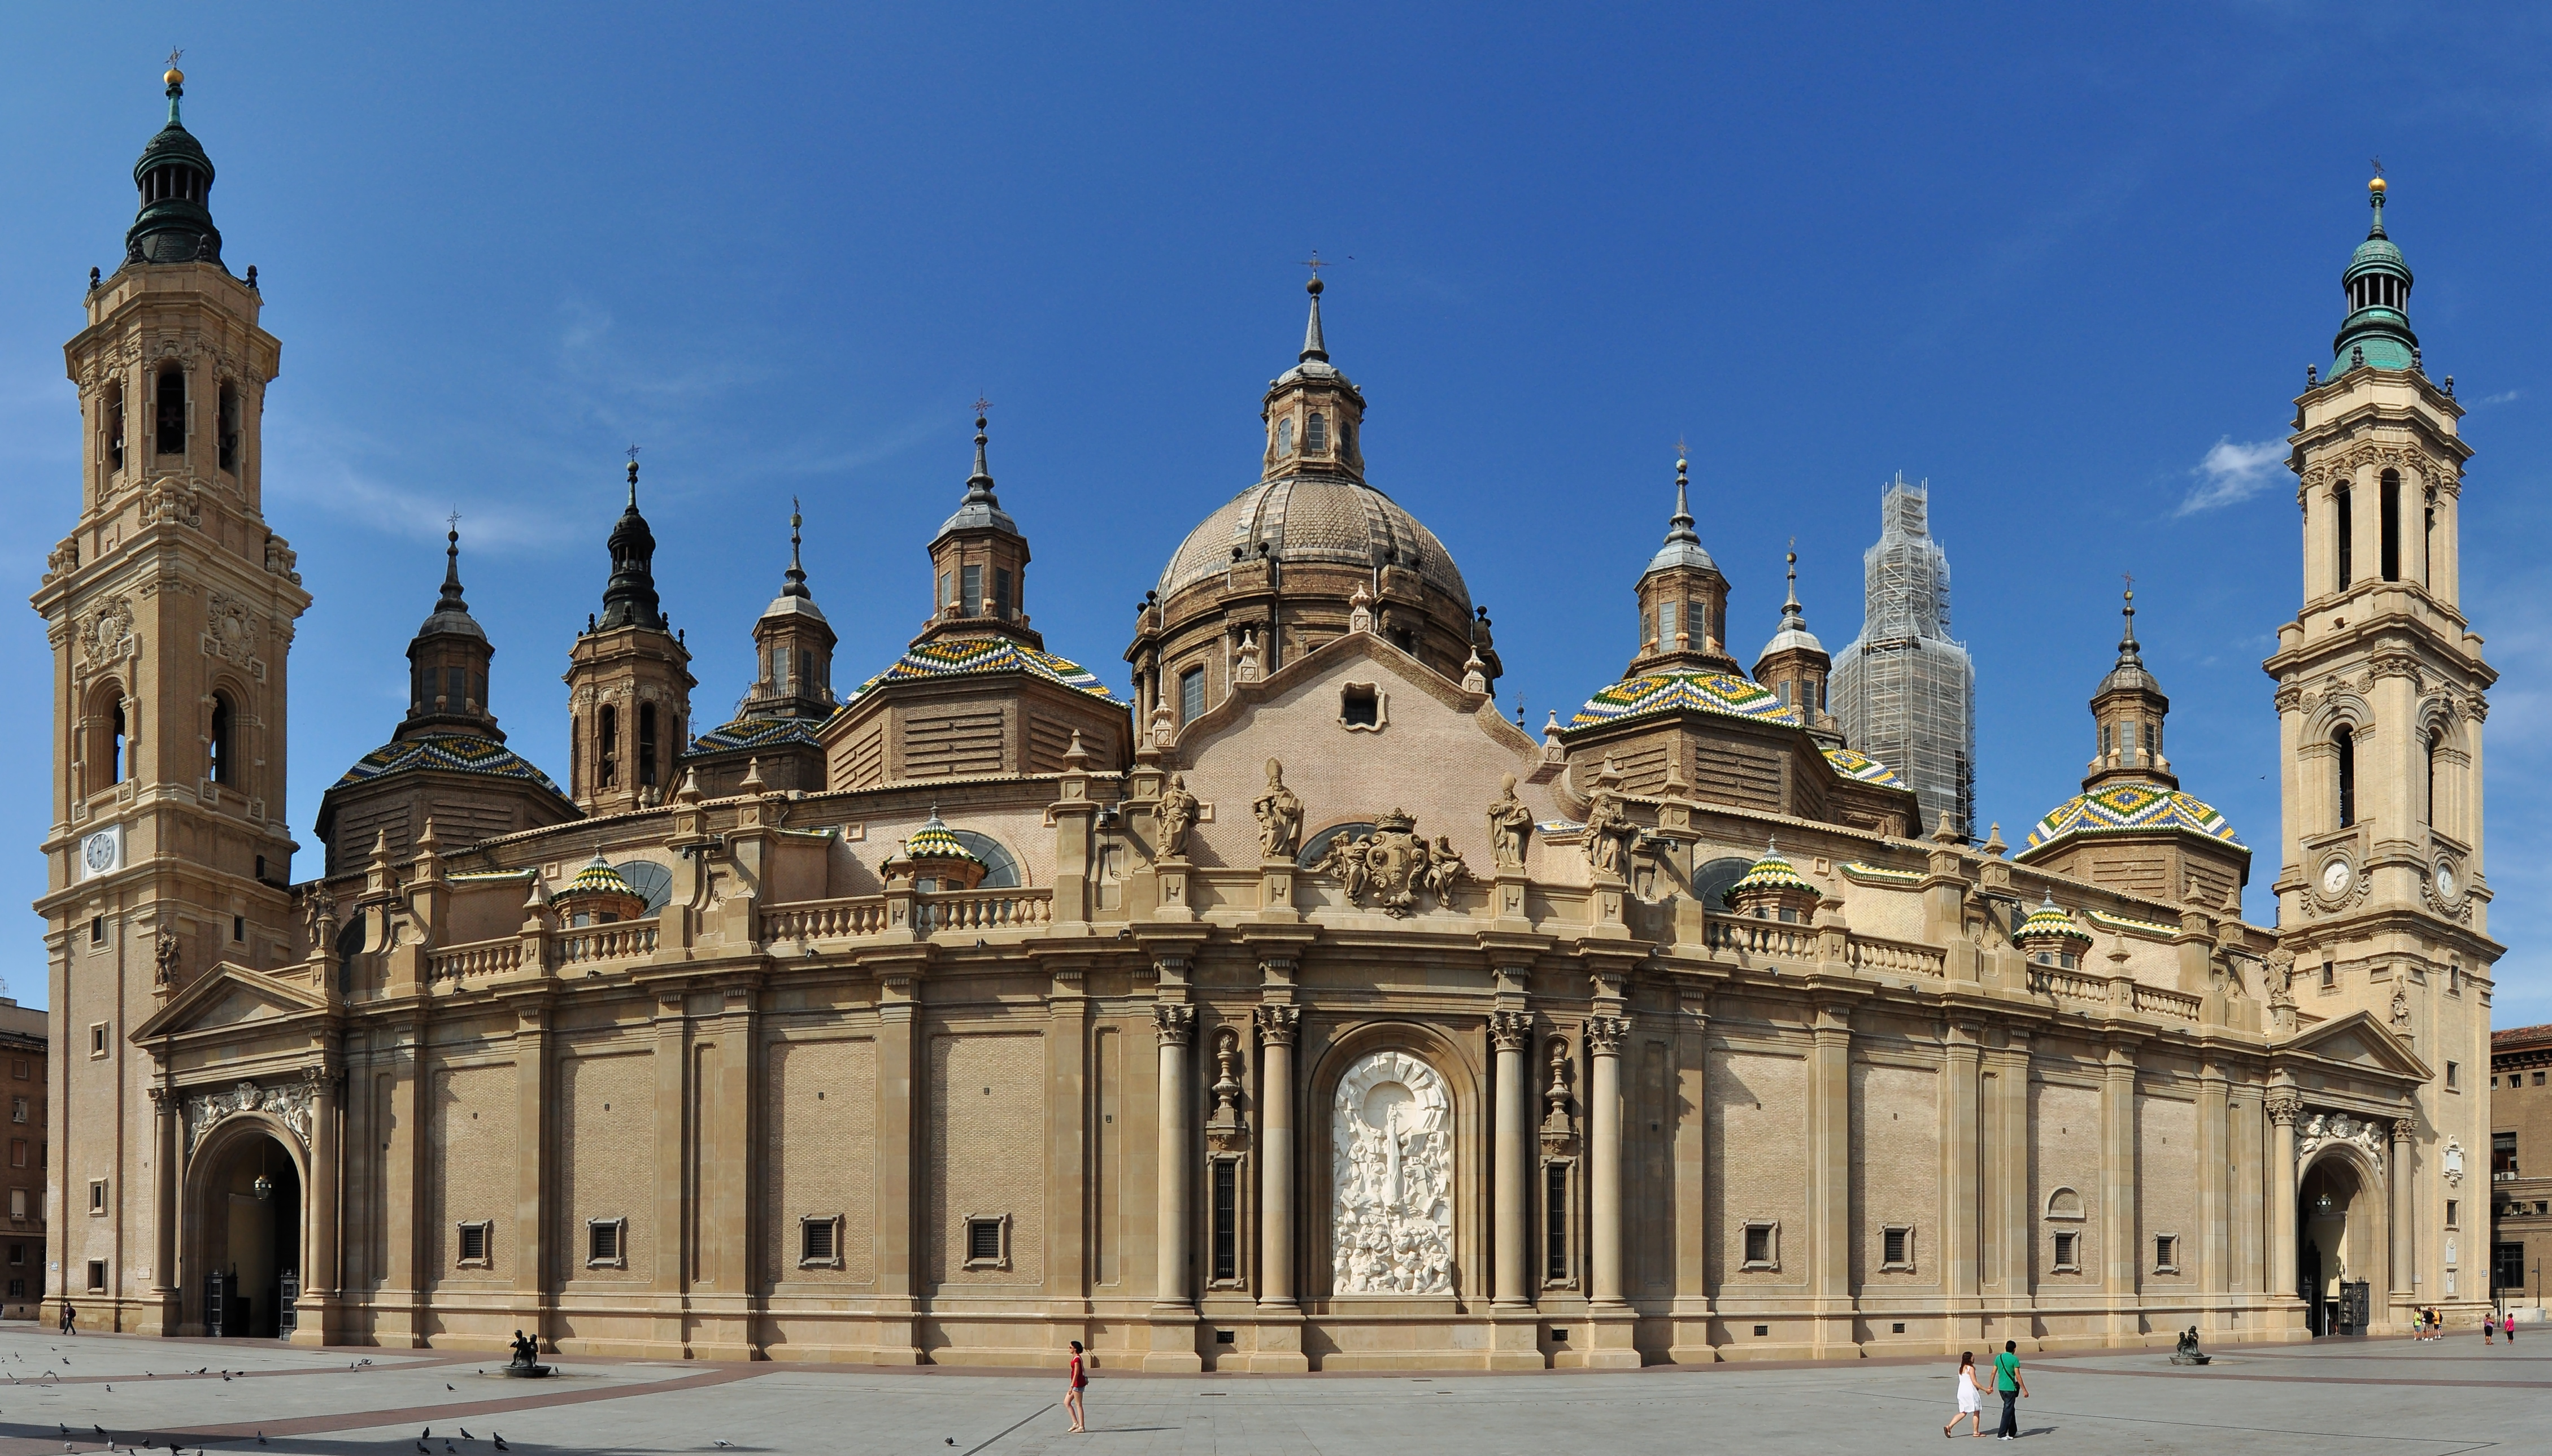 Basilica of Our Lady of the Pillar, Spain